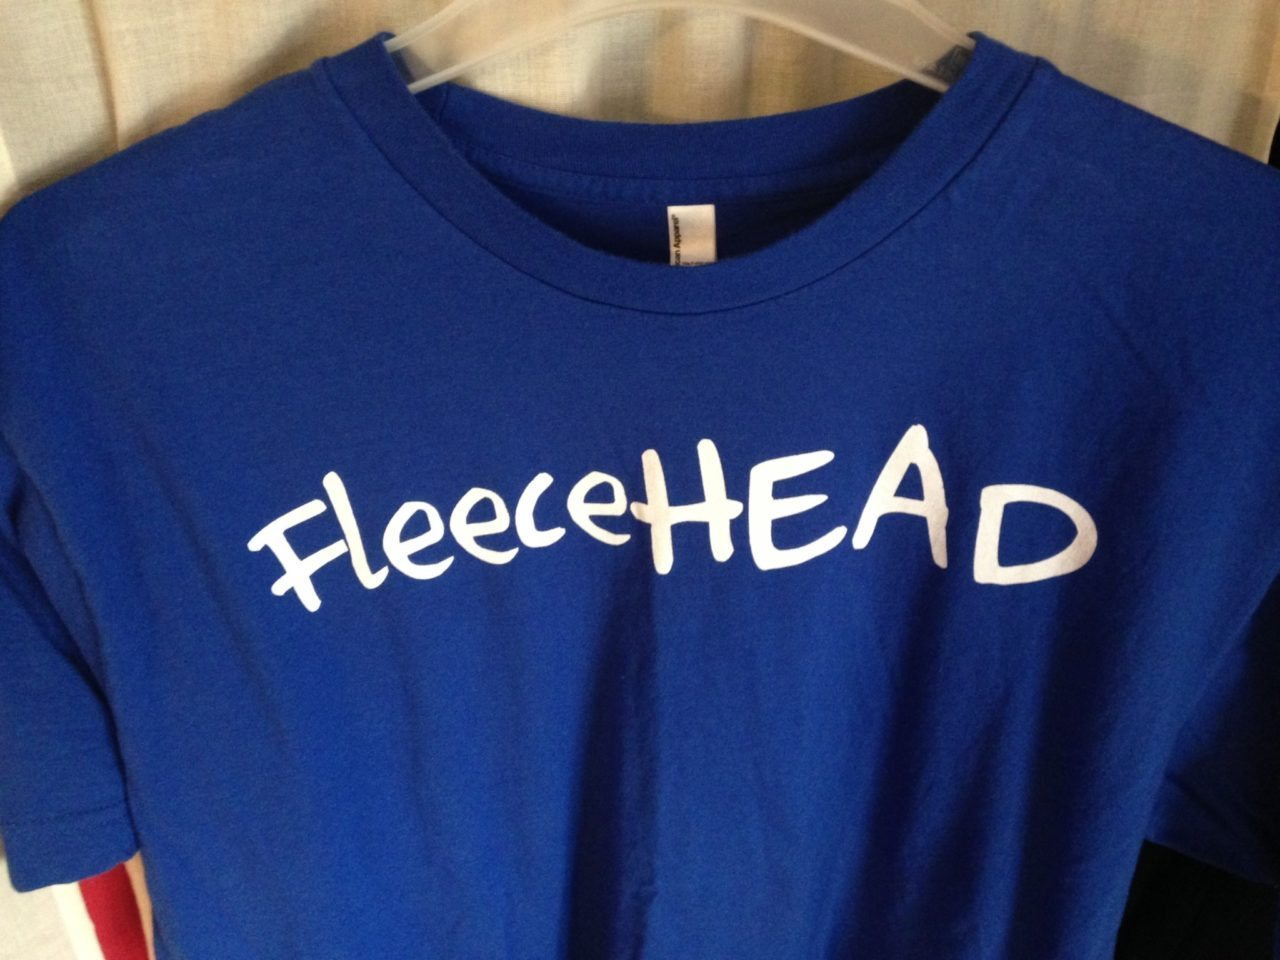 FleeceHEAD t-shirts are HERE!